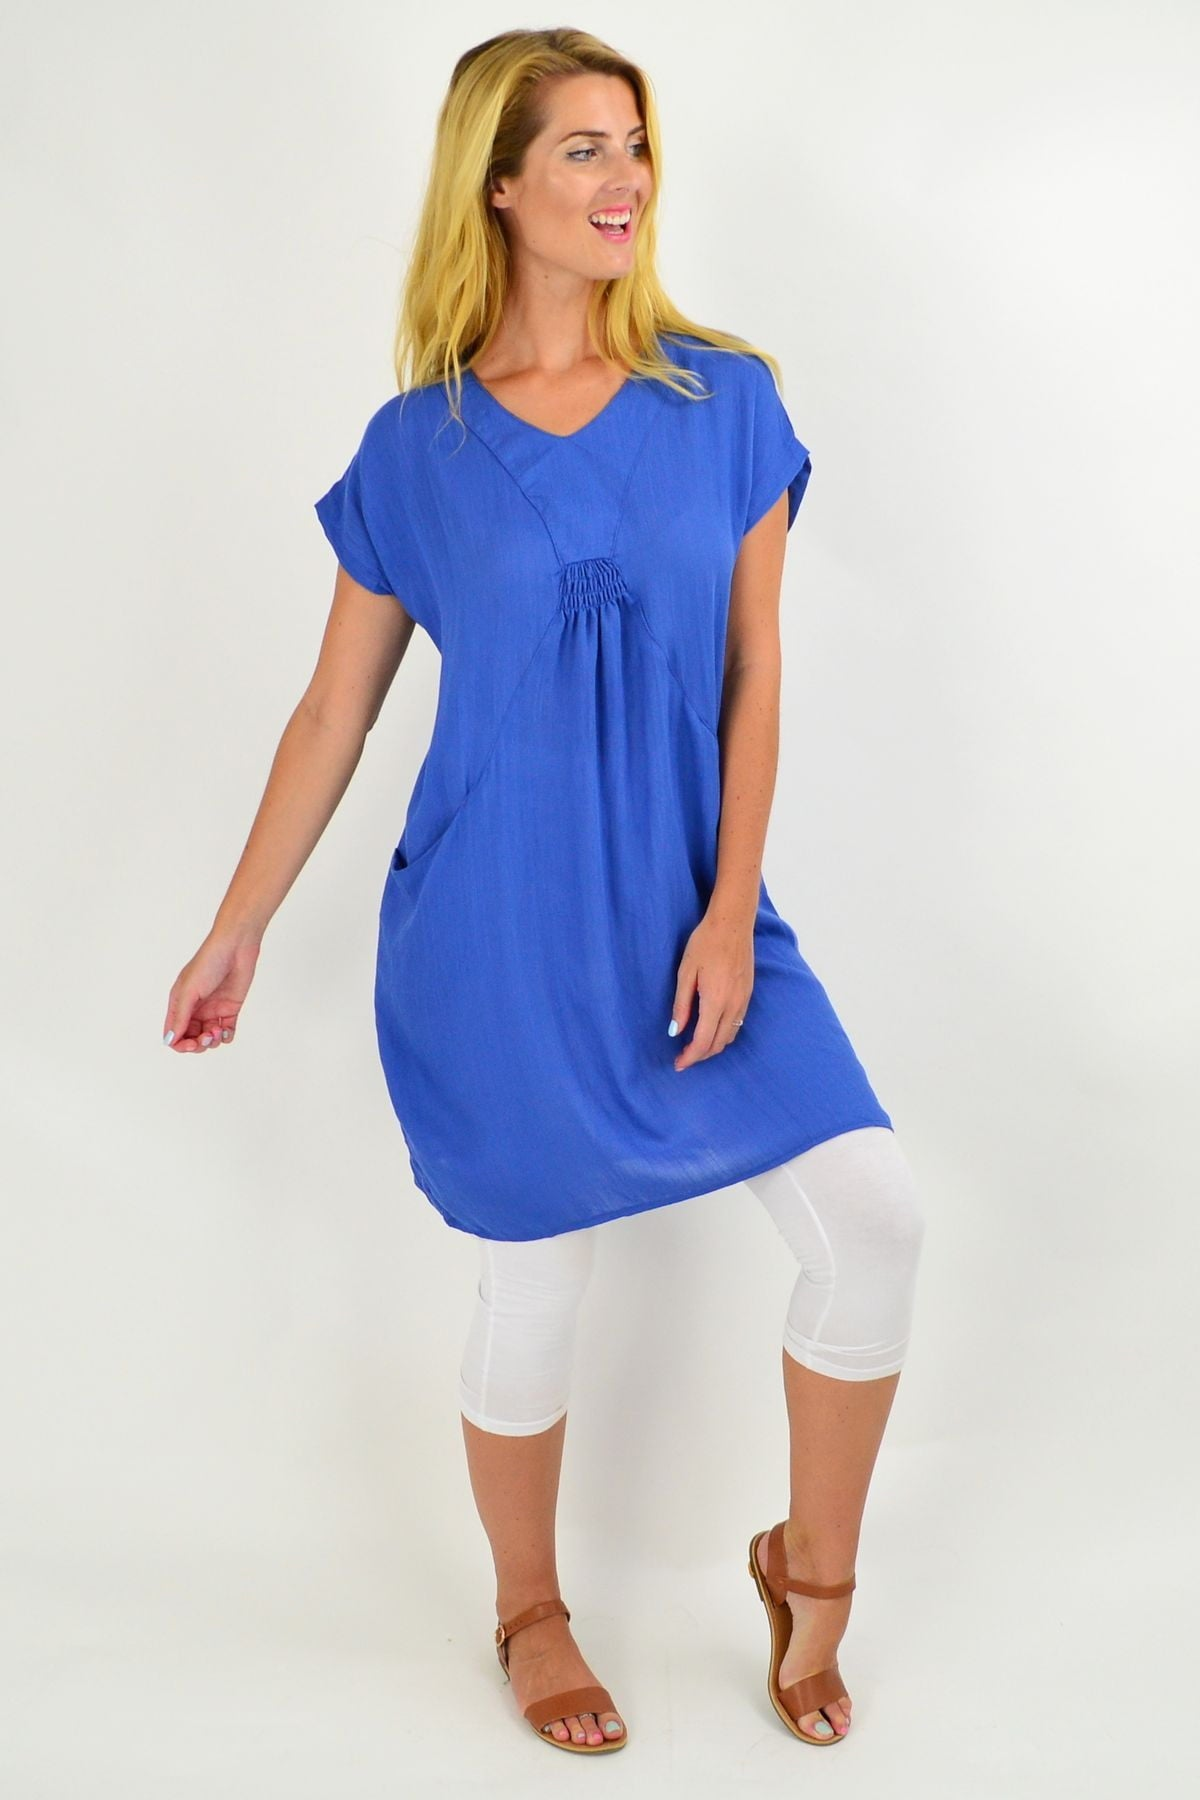 Blue Willow Tunic Dress | I Love Tunics | Tunic Tops | Tunic | Tunic Dresses  | womens clothing online